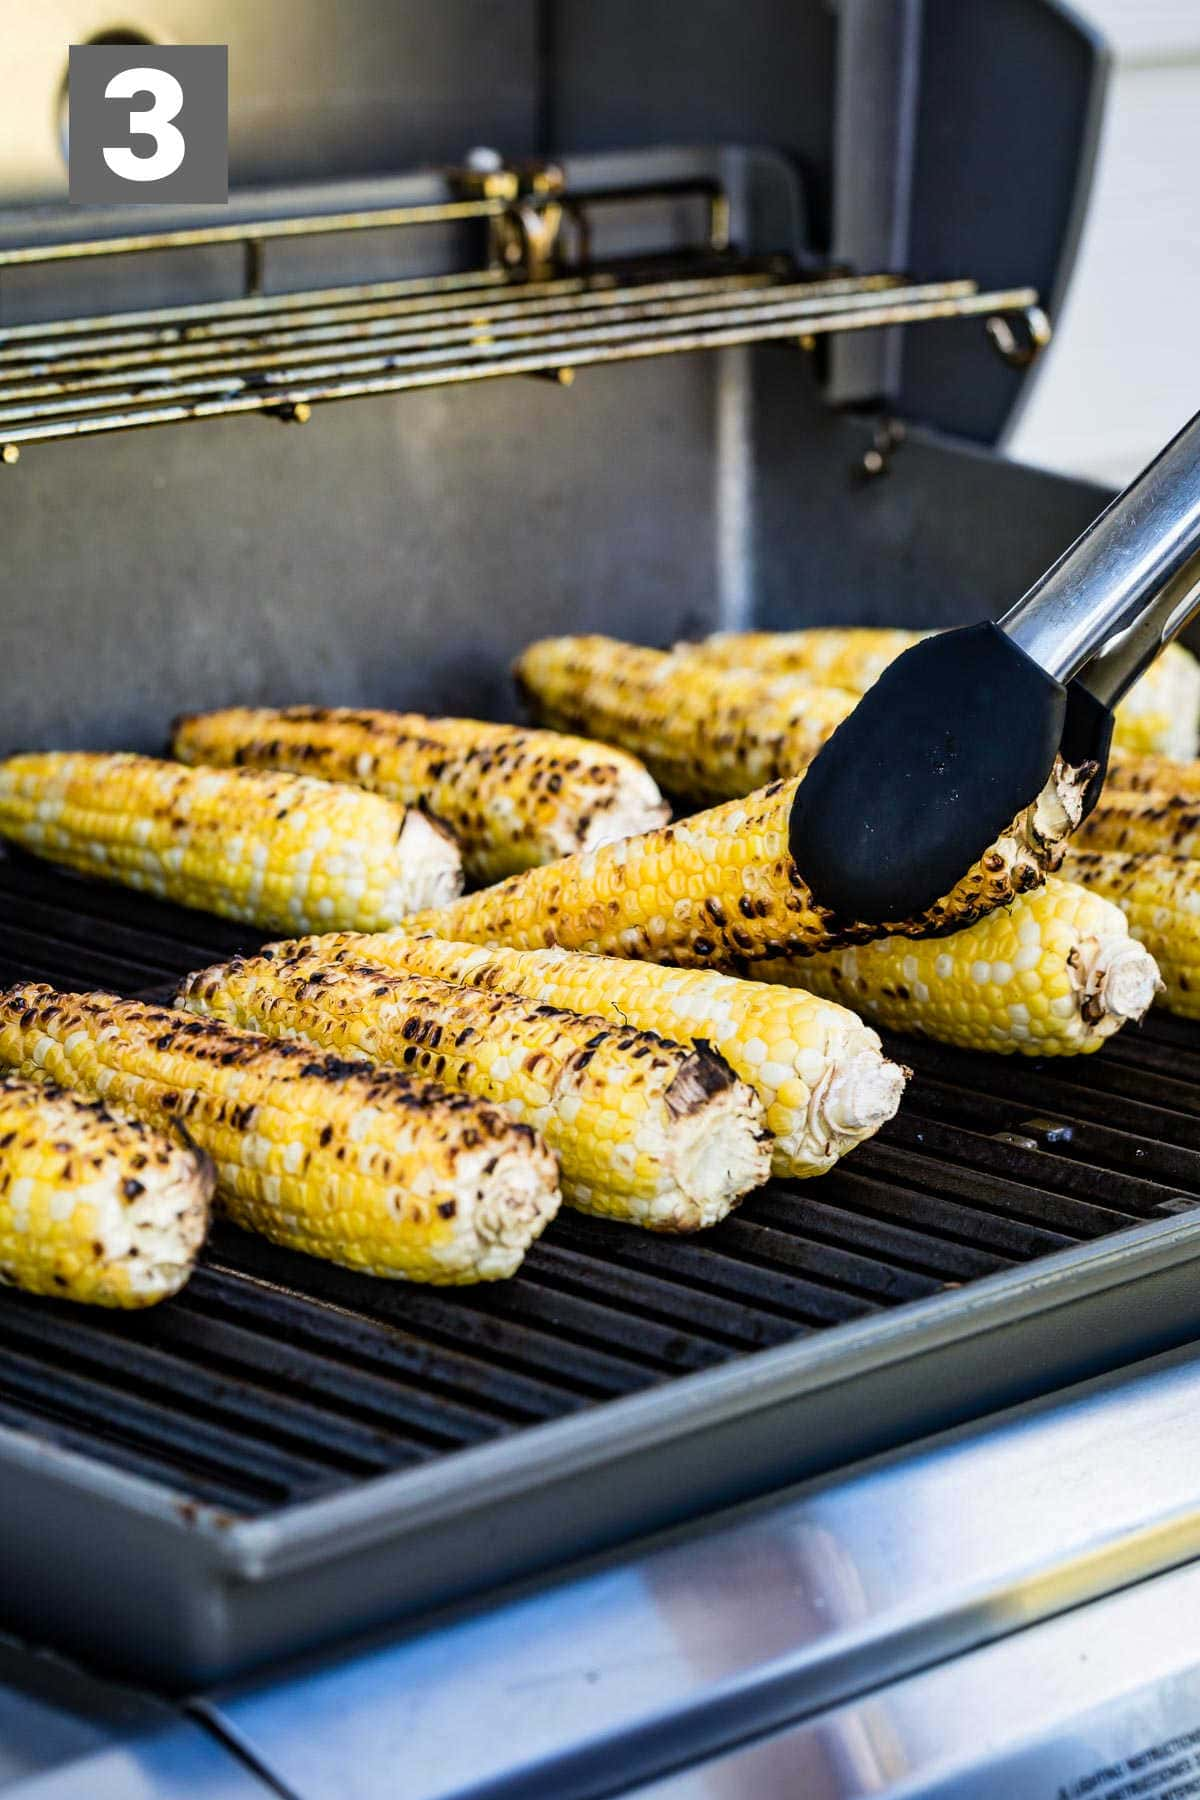 grill the corn until it is charred lightly on all sides